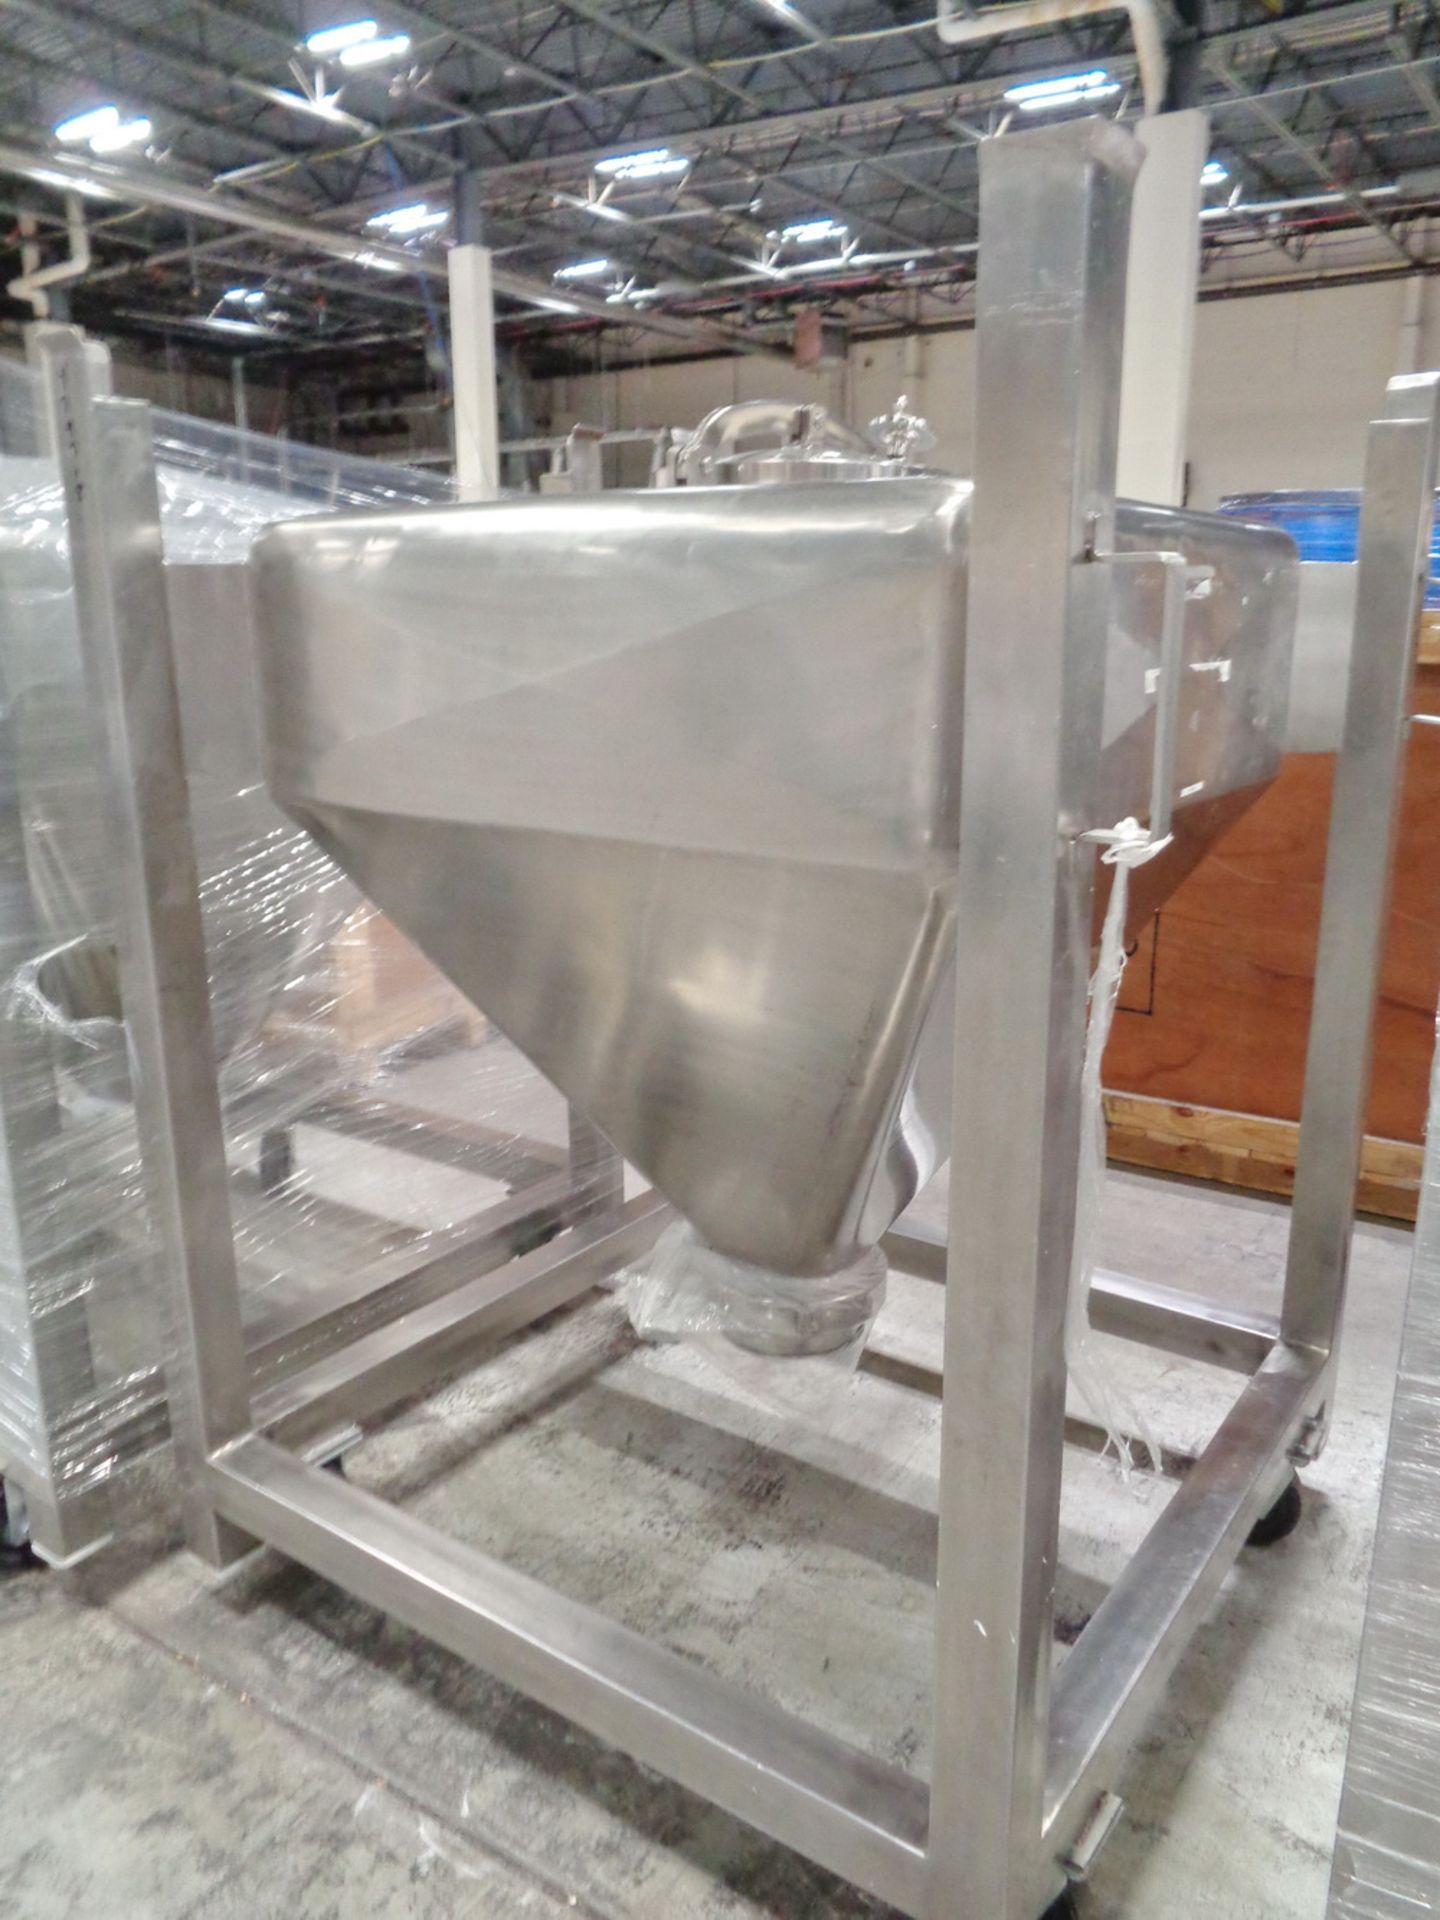 Lot 213 - SS Powder Tote, 500 Liters, no valve and no casters